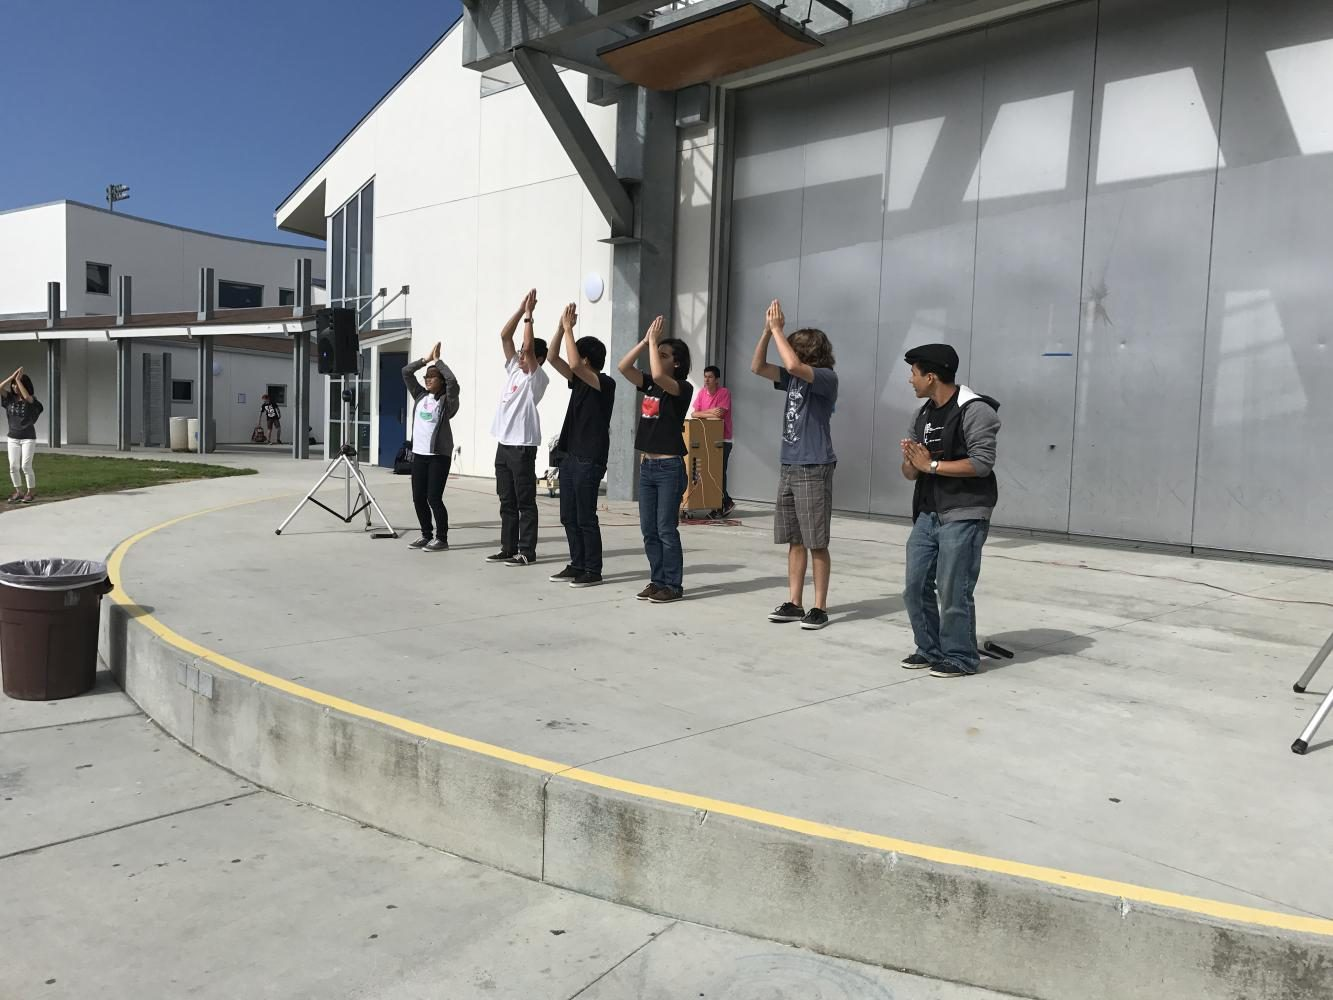 Students Dance to Japanese Music